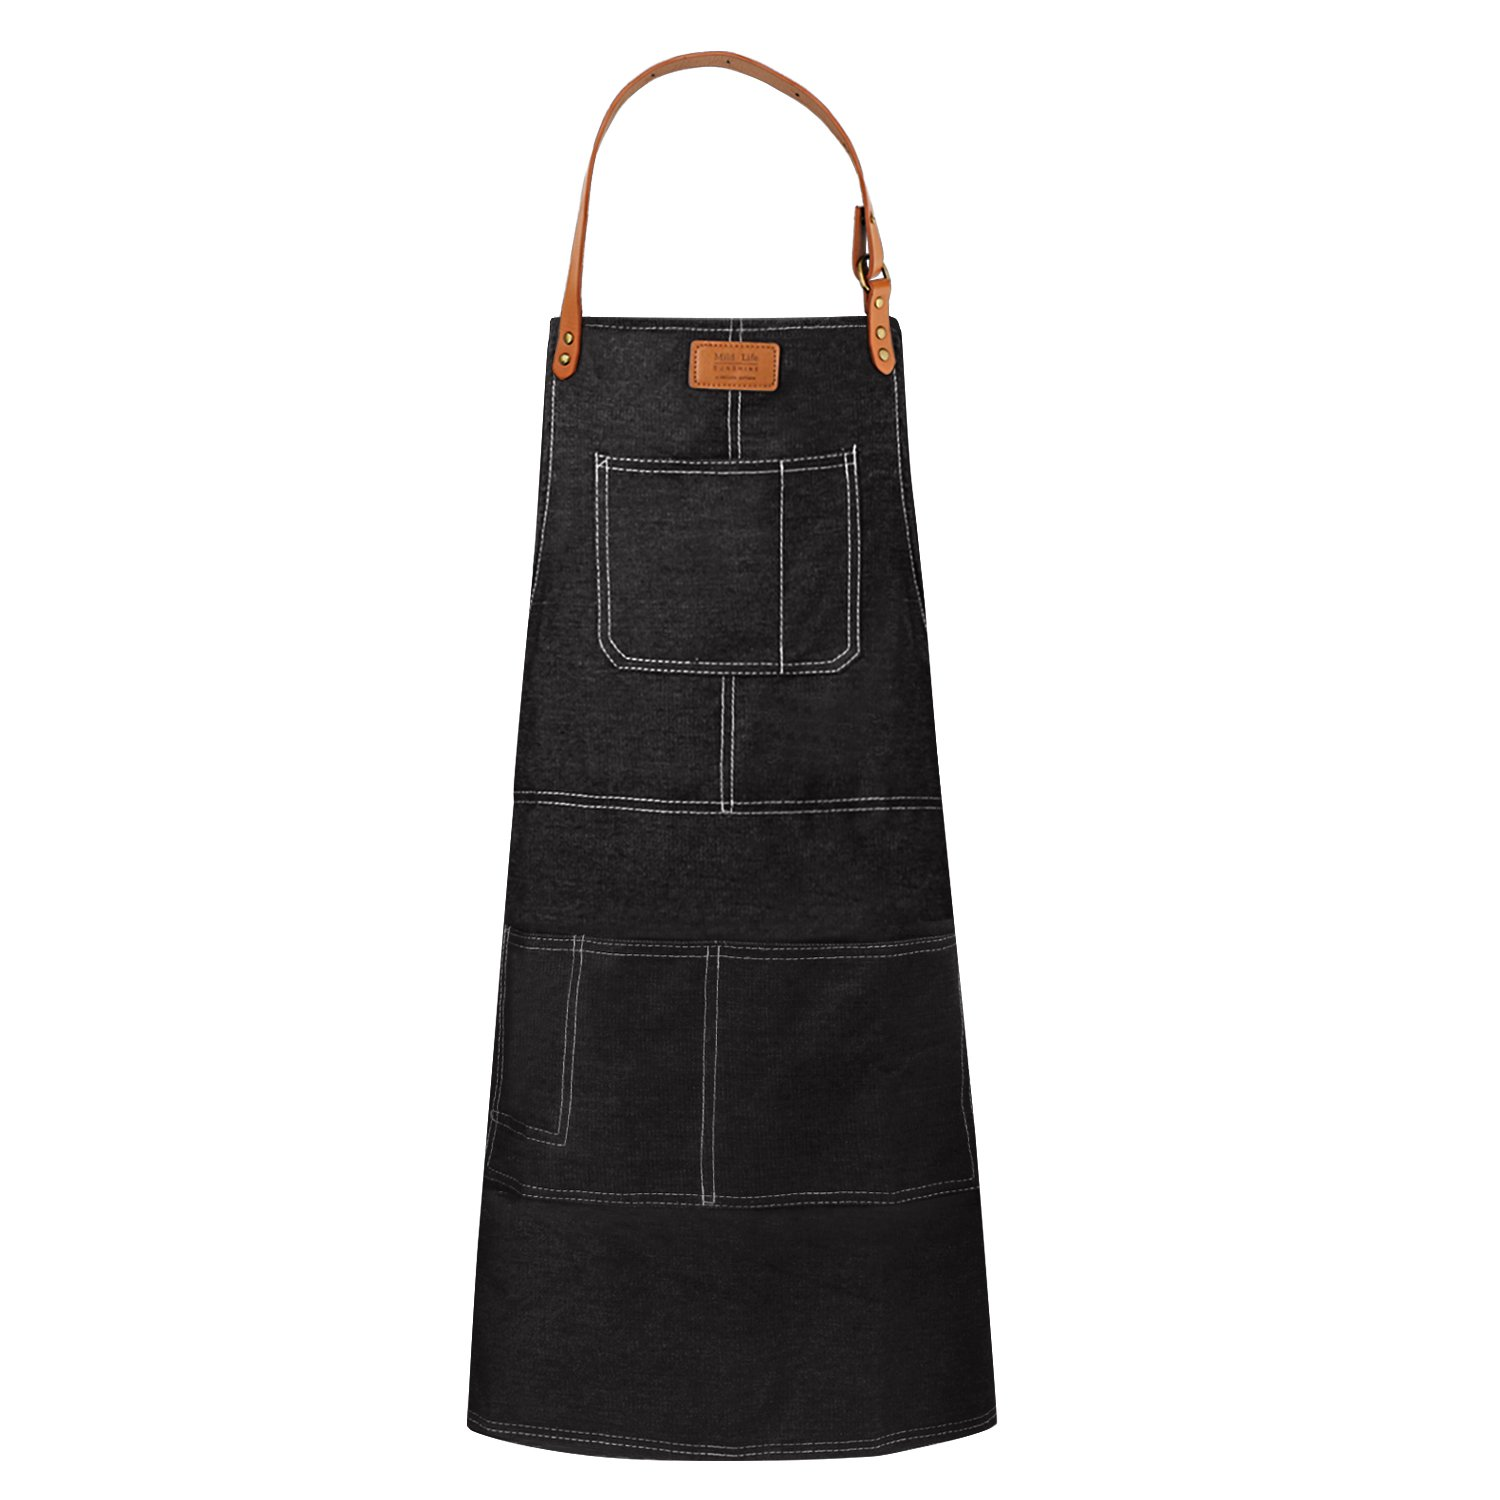 Denim Protective Work Apron for Cooking BBQ, Black Heavy Duty Chef Waiter Jeans Apron for Cafe Restaurants Bars, Bistro Server Apron Uniforms with 5 Tool Pockets for Men Women